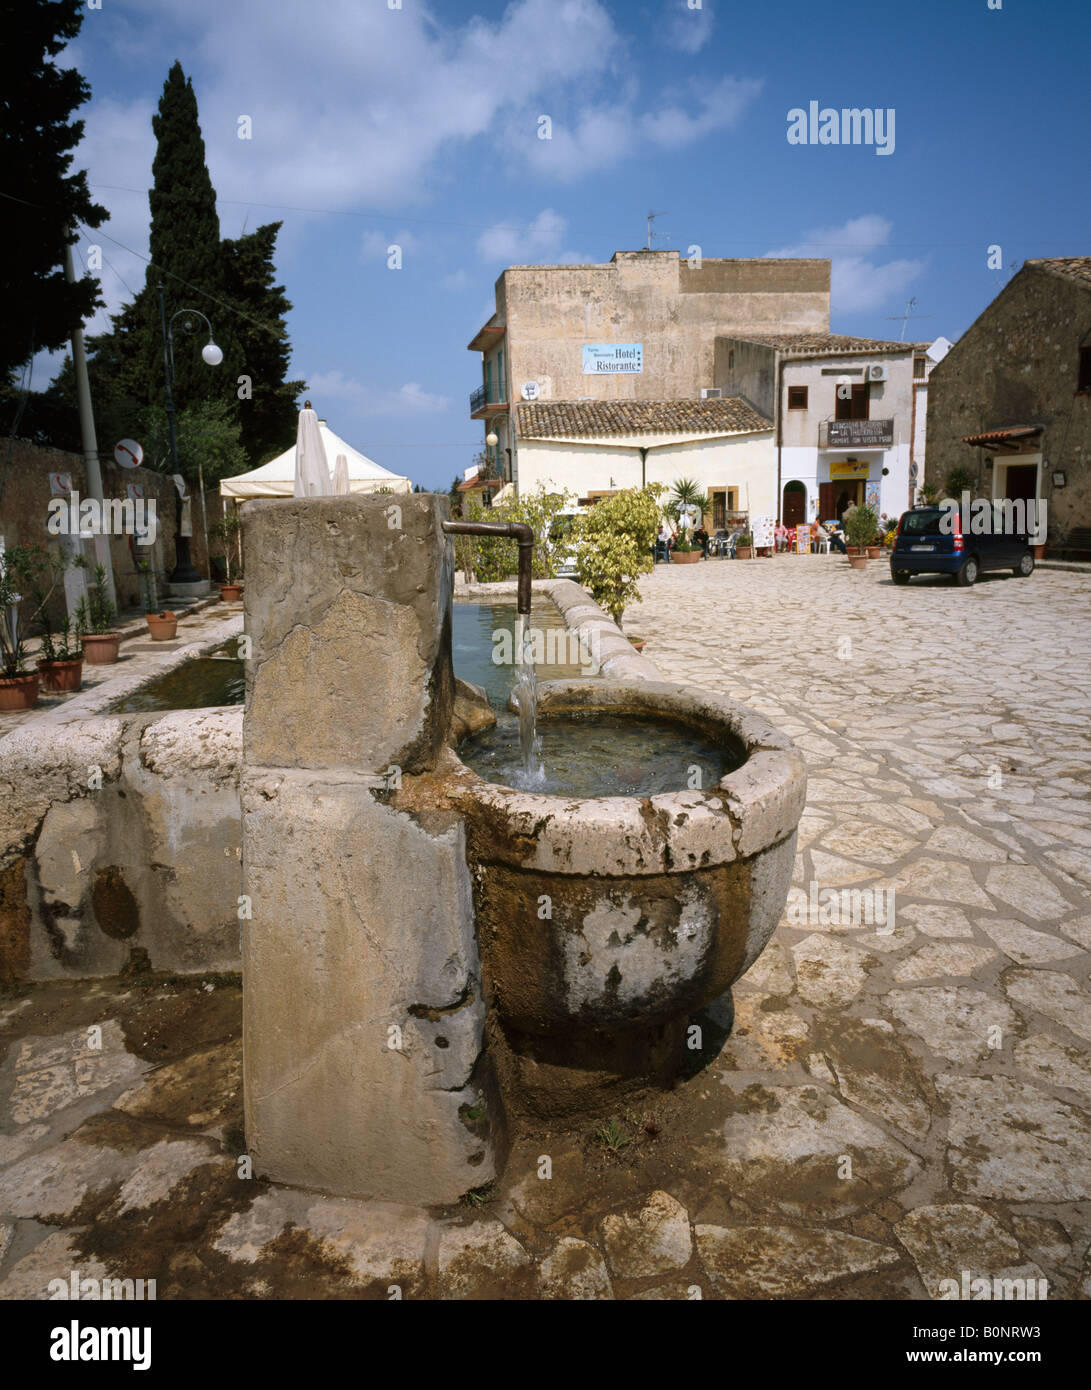 The communal water tap and trough. Scopello. - Stock Image